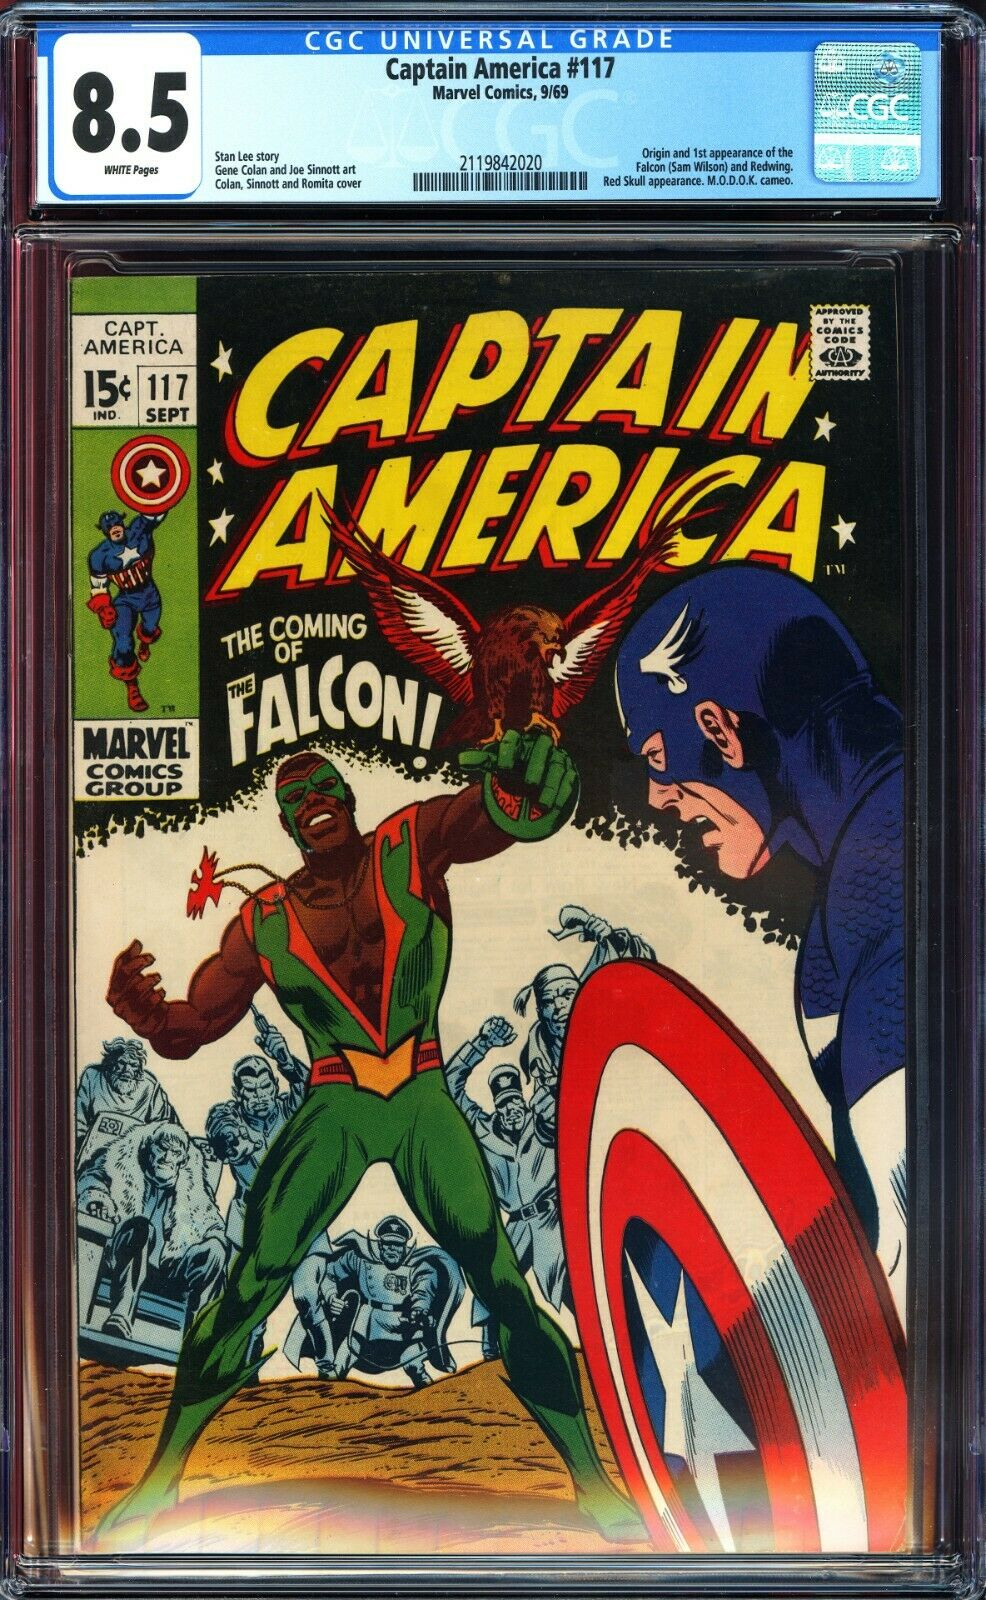 Captain America #117 CGC 8.5 & #118 CGC 8.0 & #119 CGC 9.0 1st,2nd & 3rd Falcon